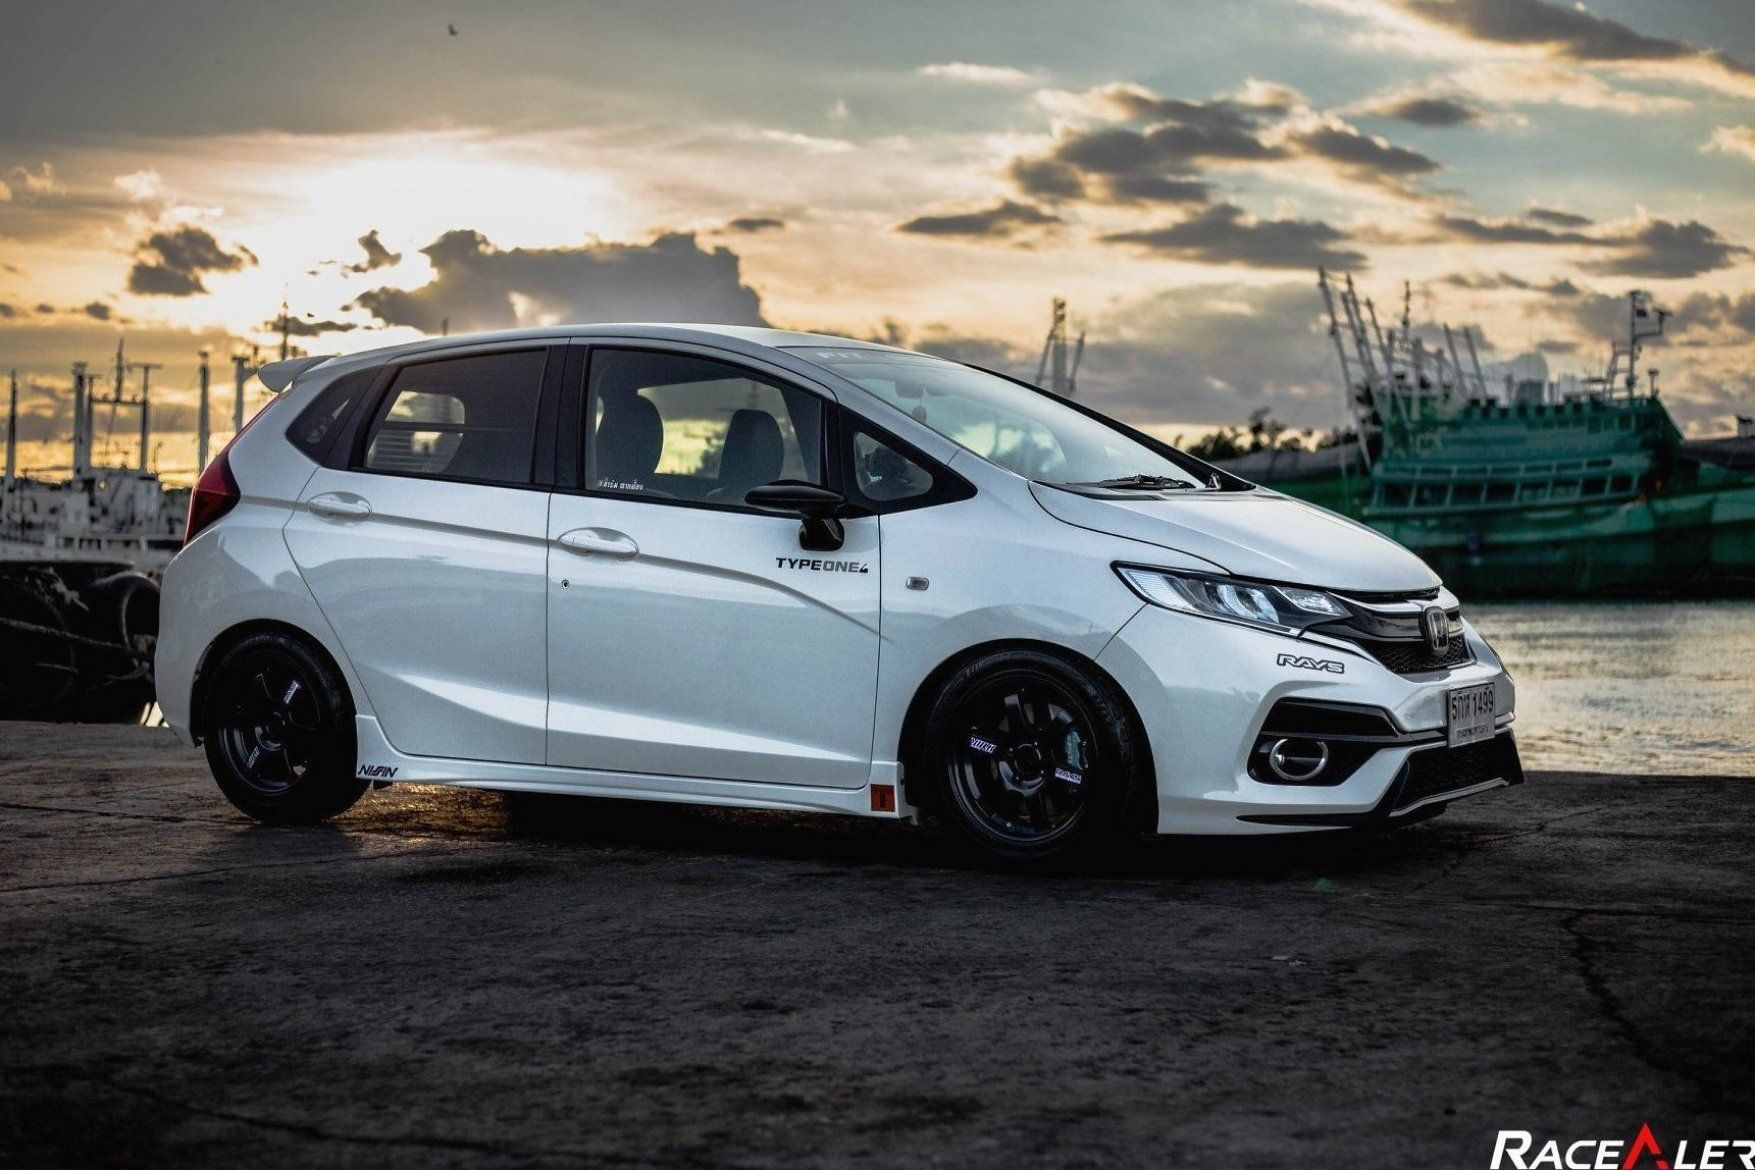 3rd Gen Honda Fit Support The Page By Picking Up Some Gear At Workout Fitness Bodytransformation In 2020 Honda Fit Honda Fit Jazz Honda